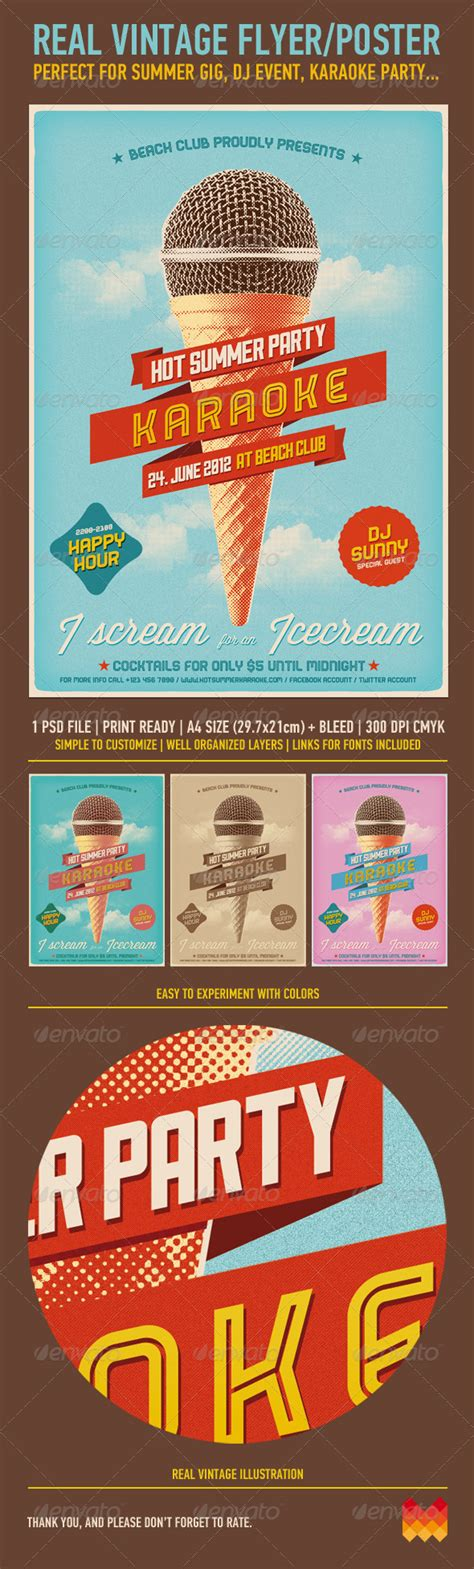 retro poster template 9 awesome vintage flyer templates wakaboom